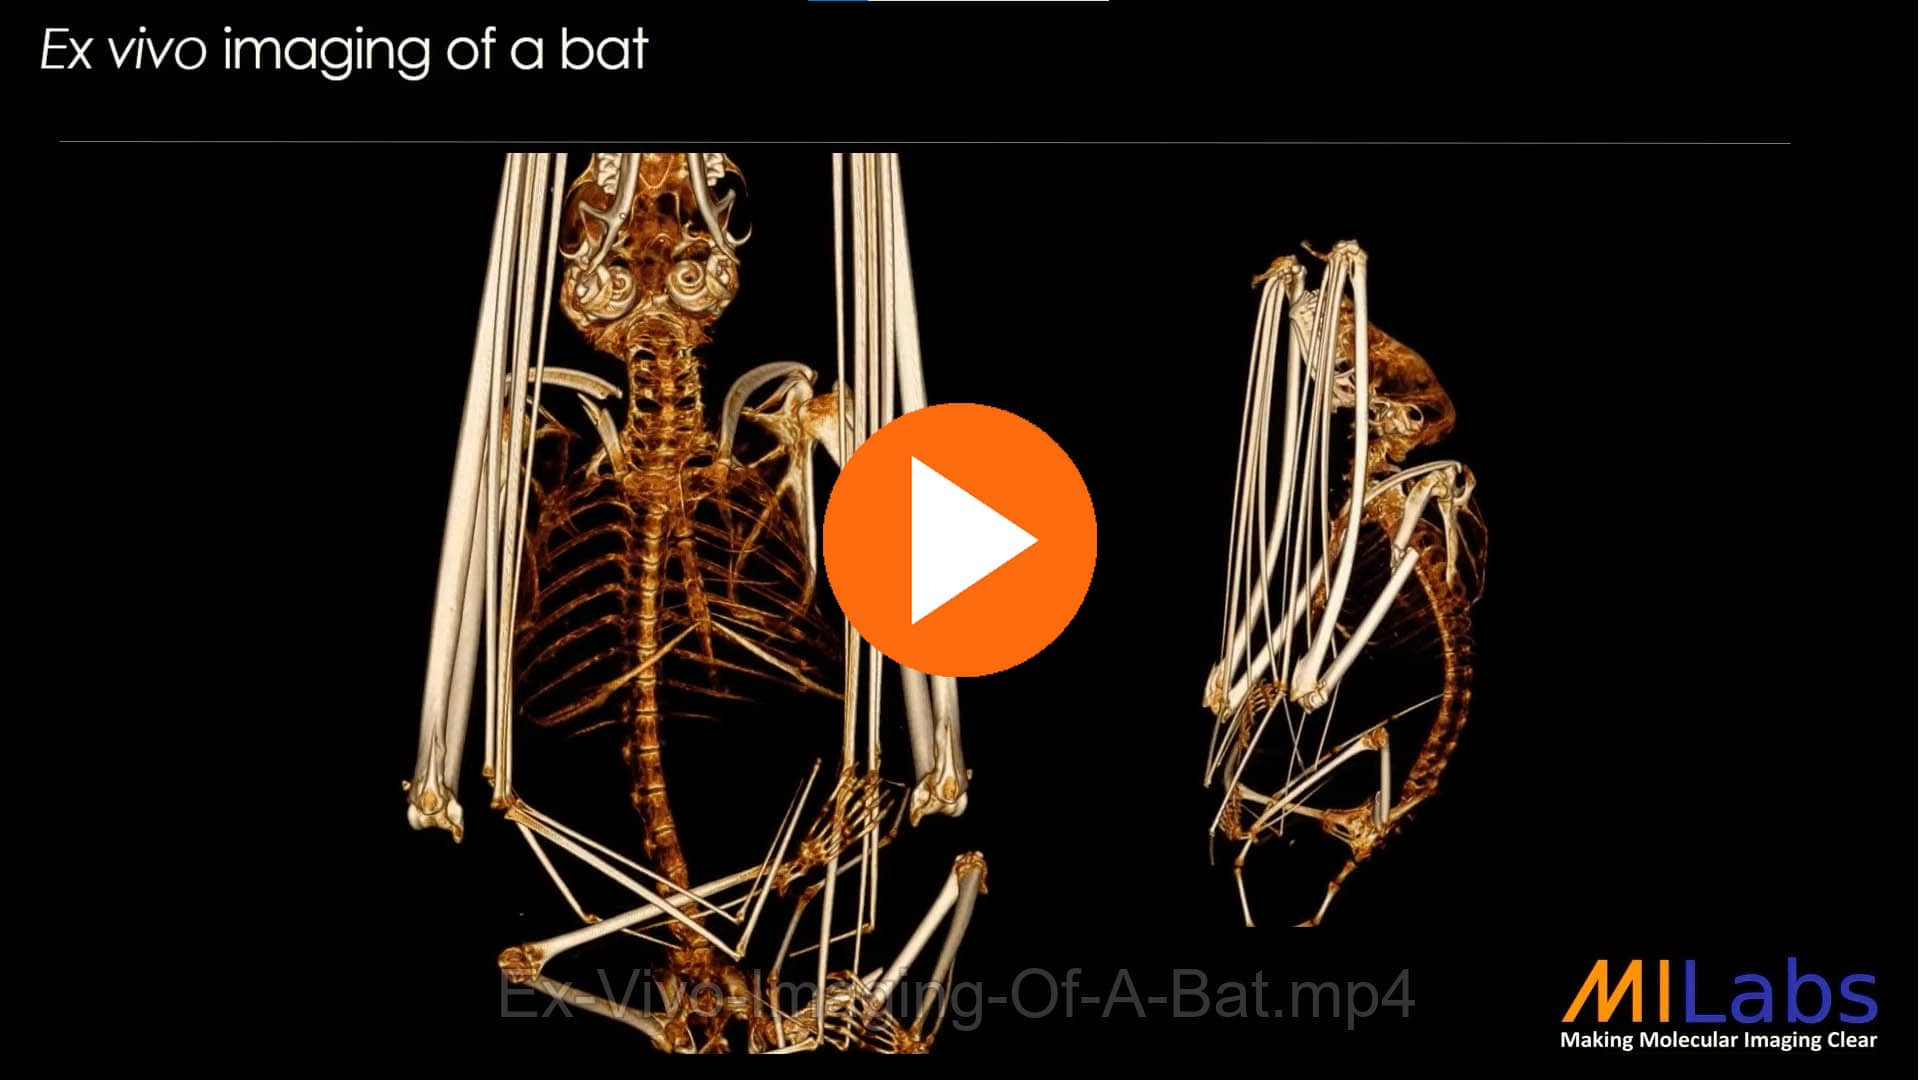 exvivo imaging of a bat with microCT for zoology purposes